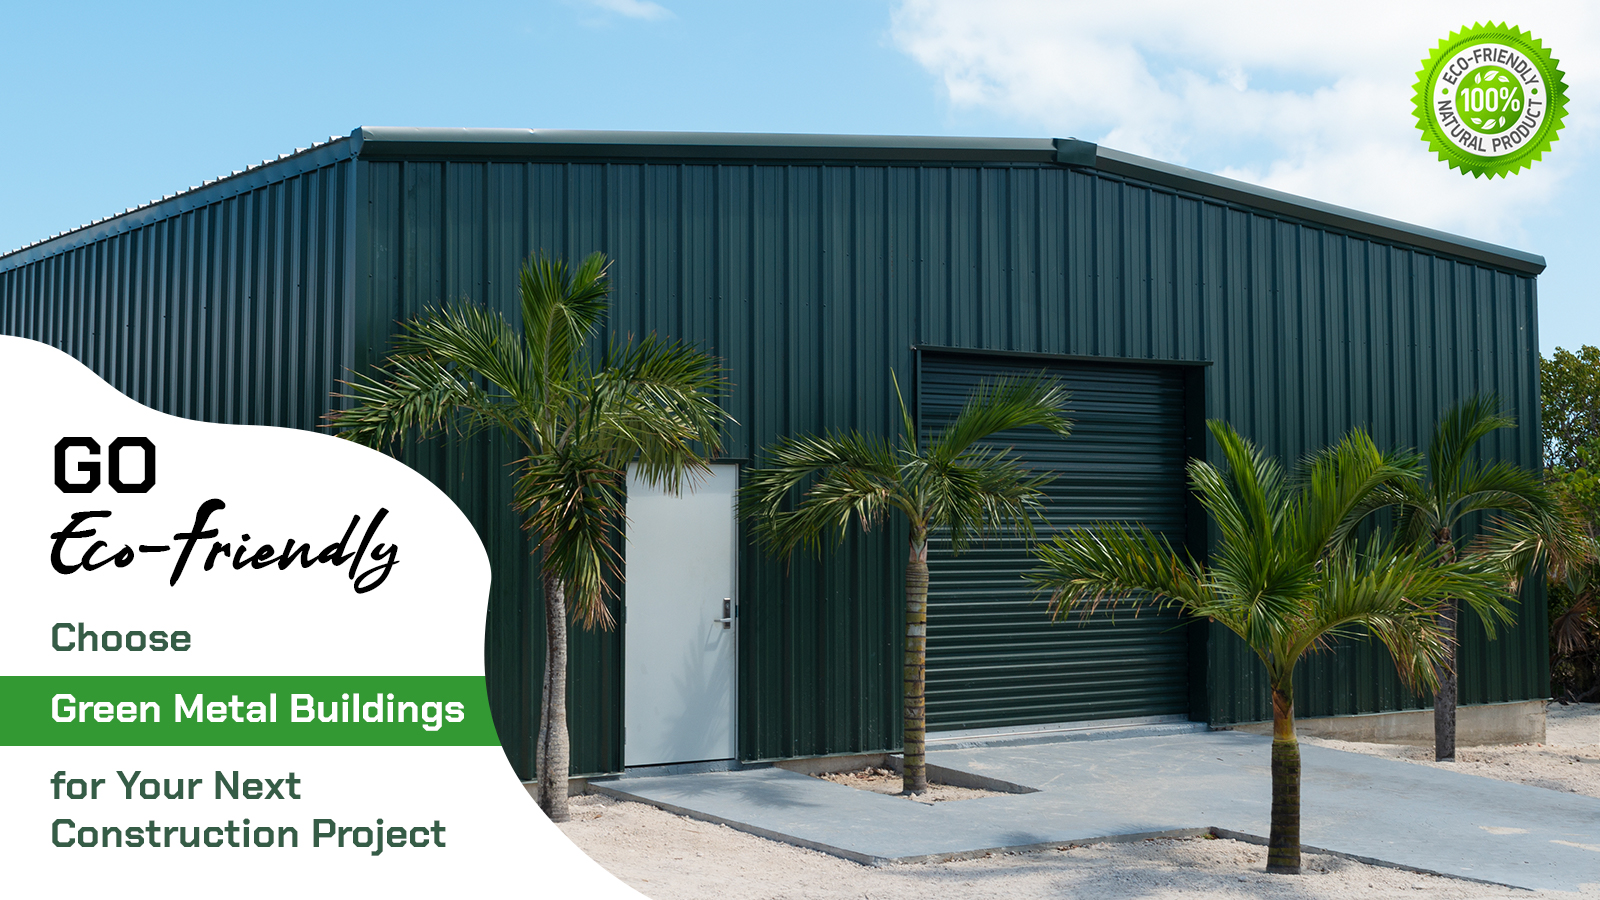 Be Eco-Friendly by Choosing Green Metal Buildings for Your Next Construction Project